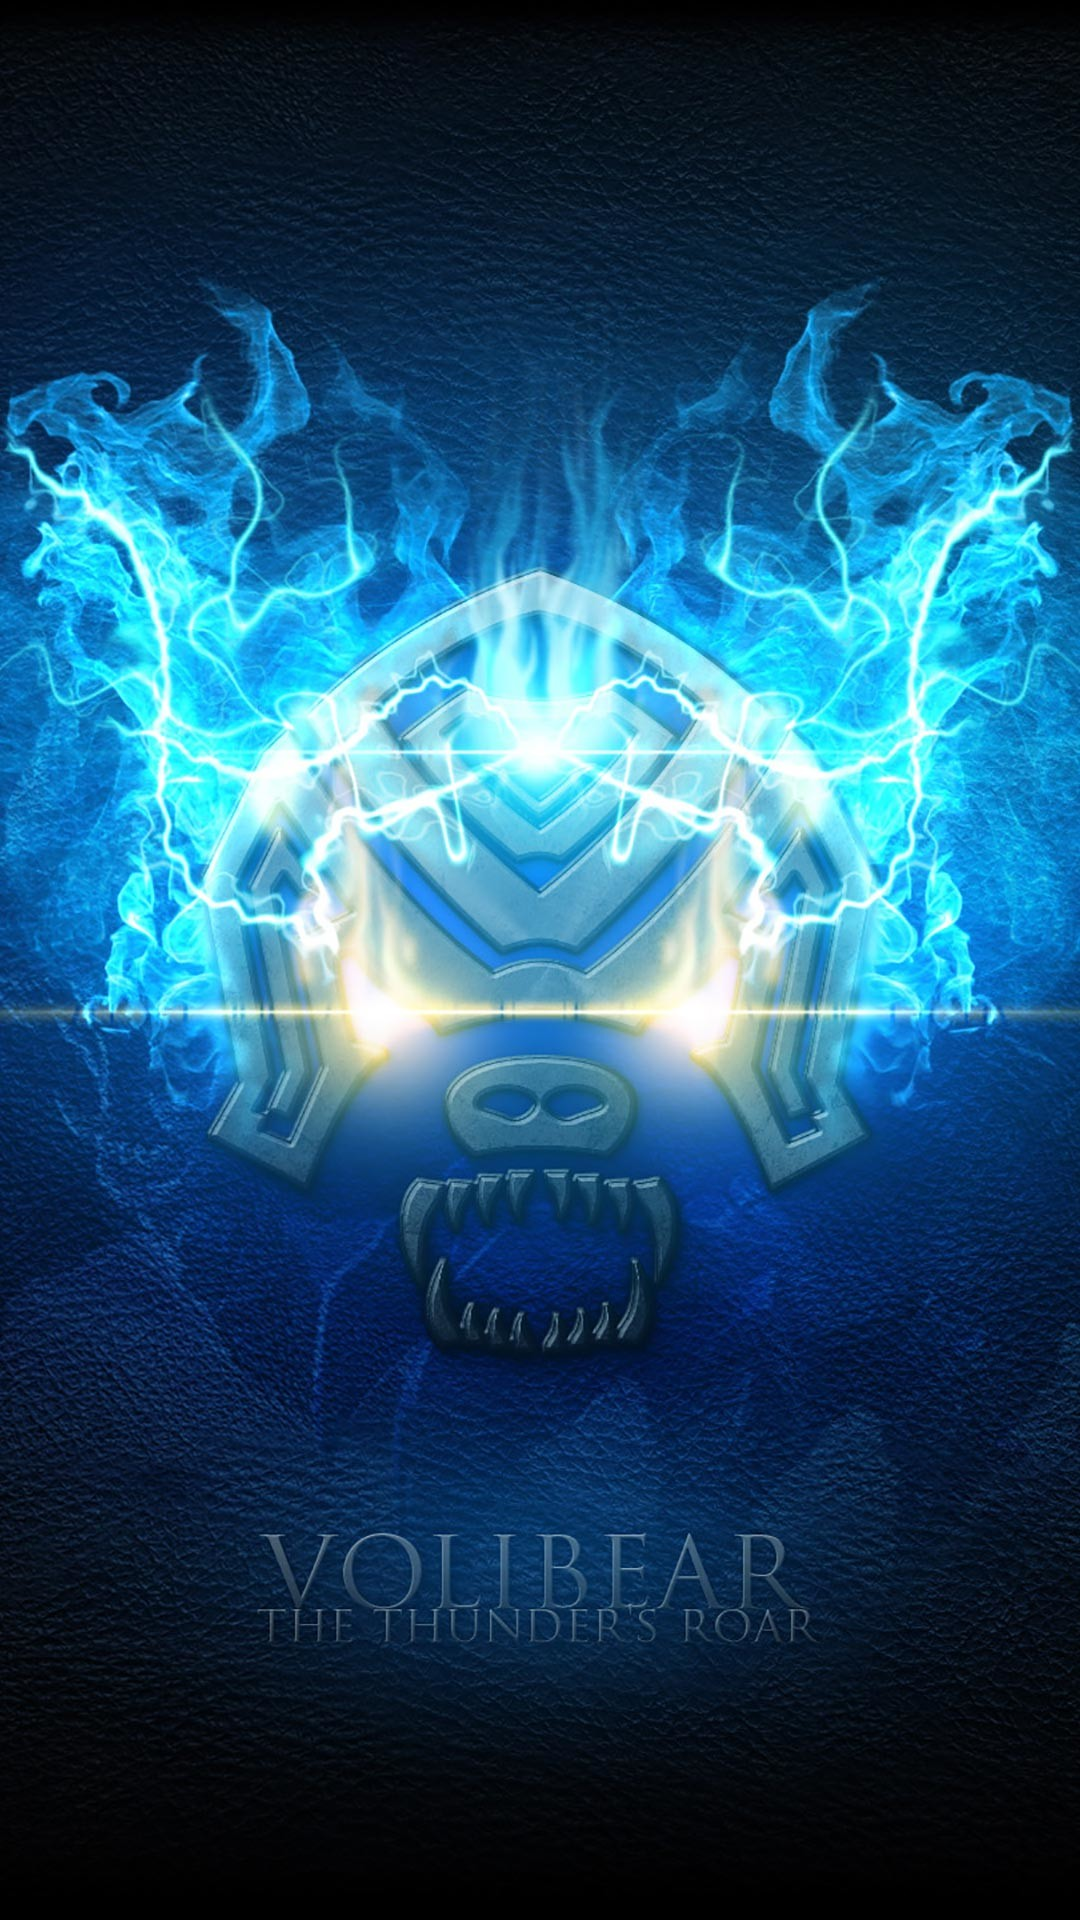 League of Legends Shirts Avaialable, Visit us! Volibear The Thunder's Roar  blue fire android, iphone wallpaper, mobile background